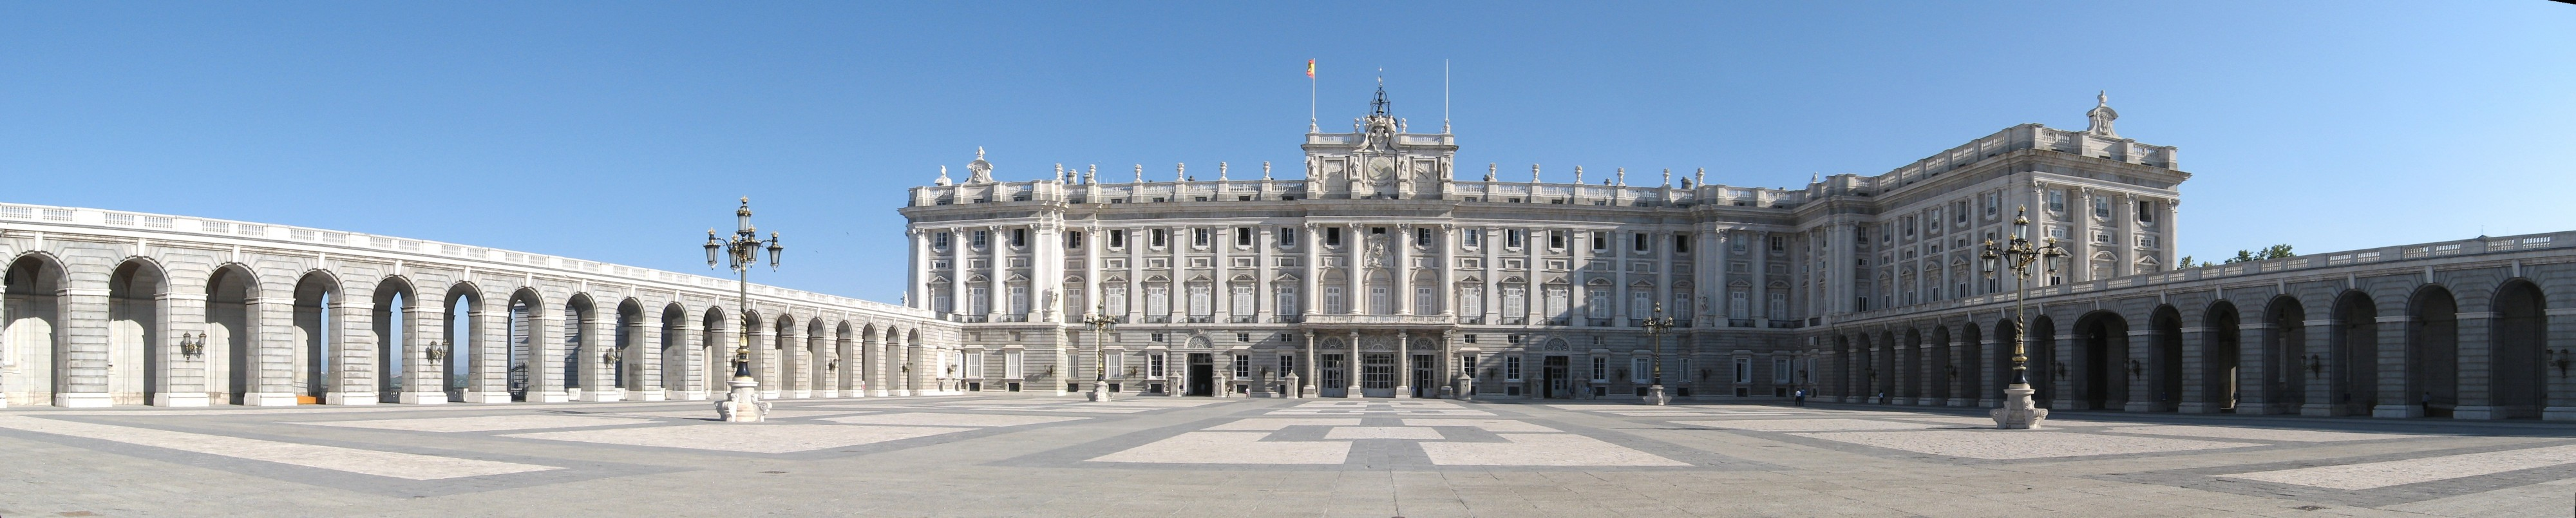 Madrid Palacio Real pano equirectangolar